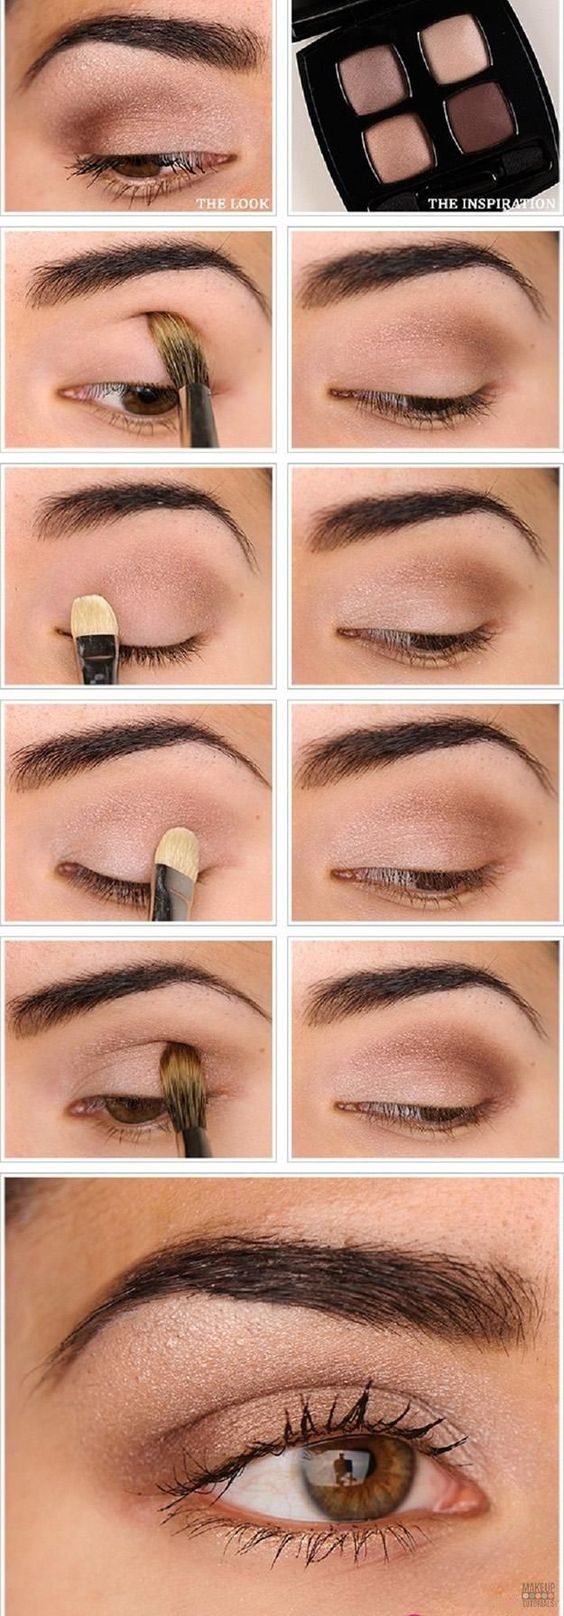 Natural Makeup For Brown Eyes 15 Simple Eye Makeup Ideas For Work Outfits Pretty Designs